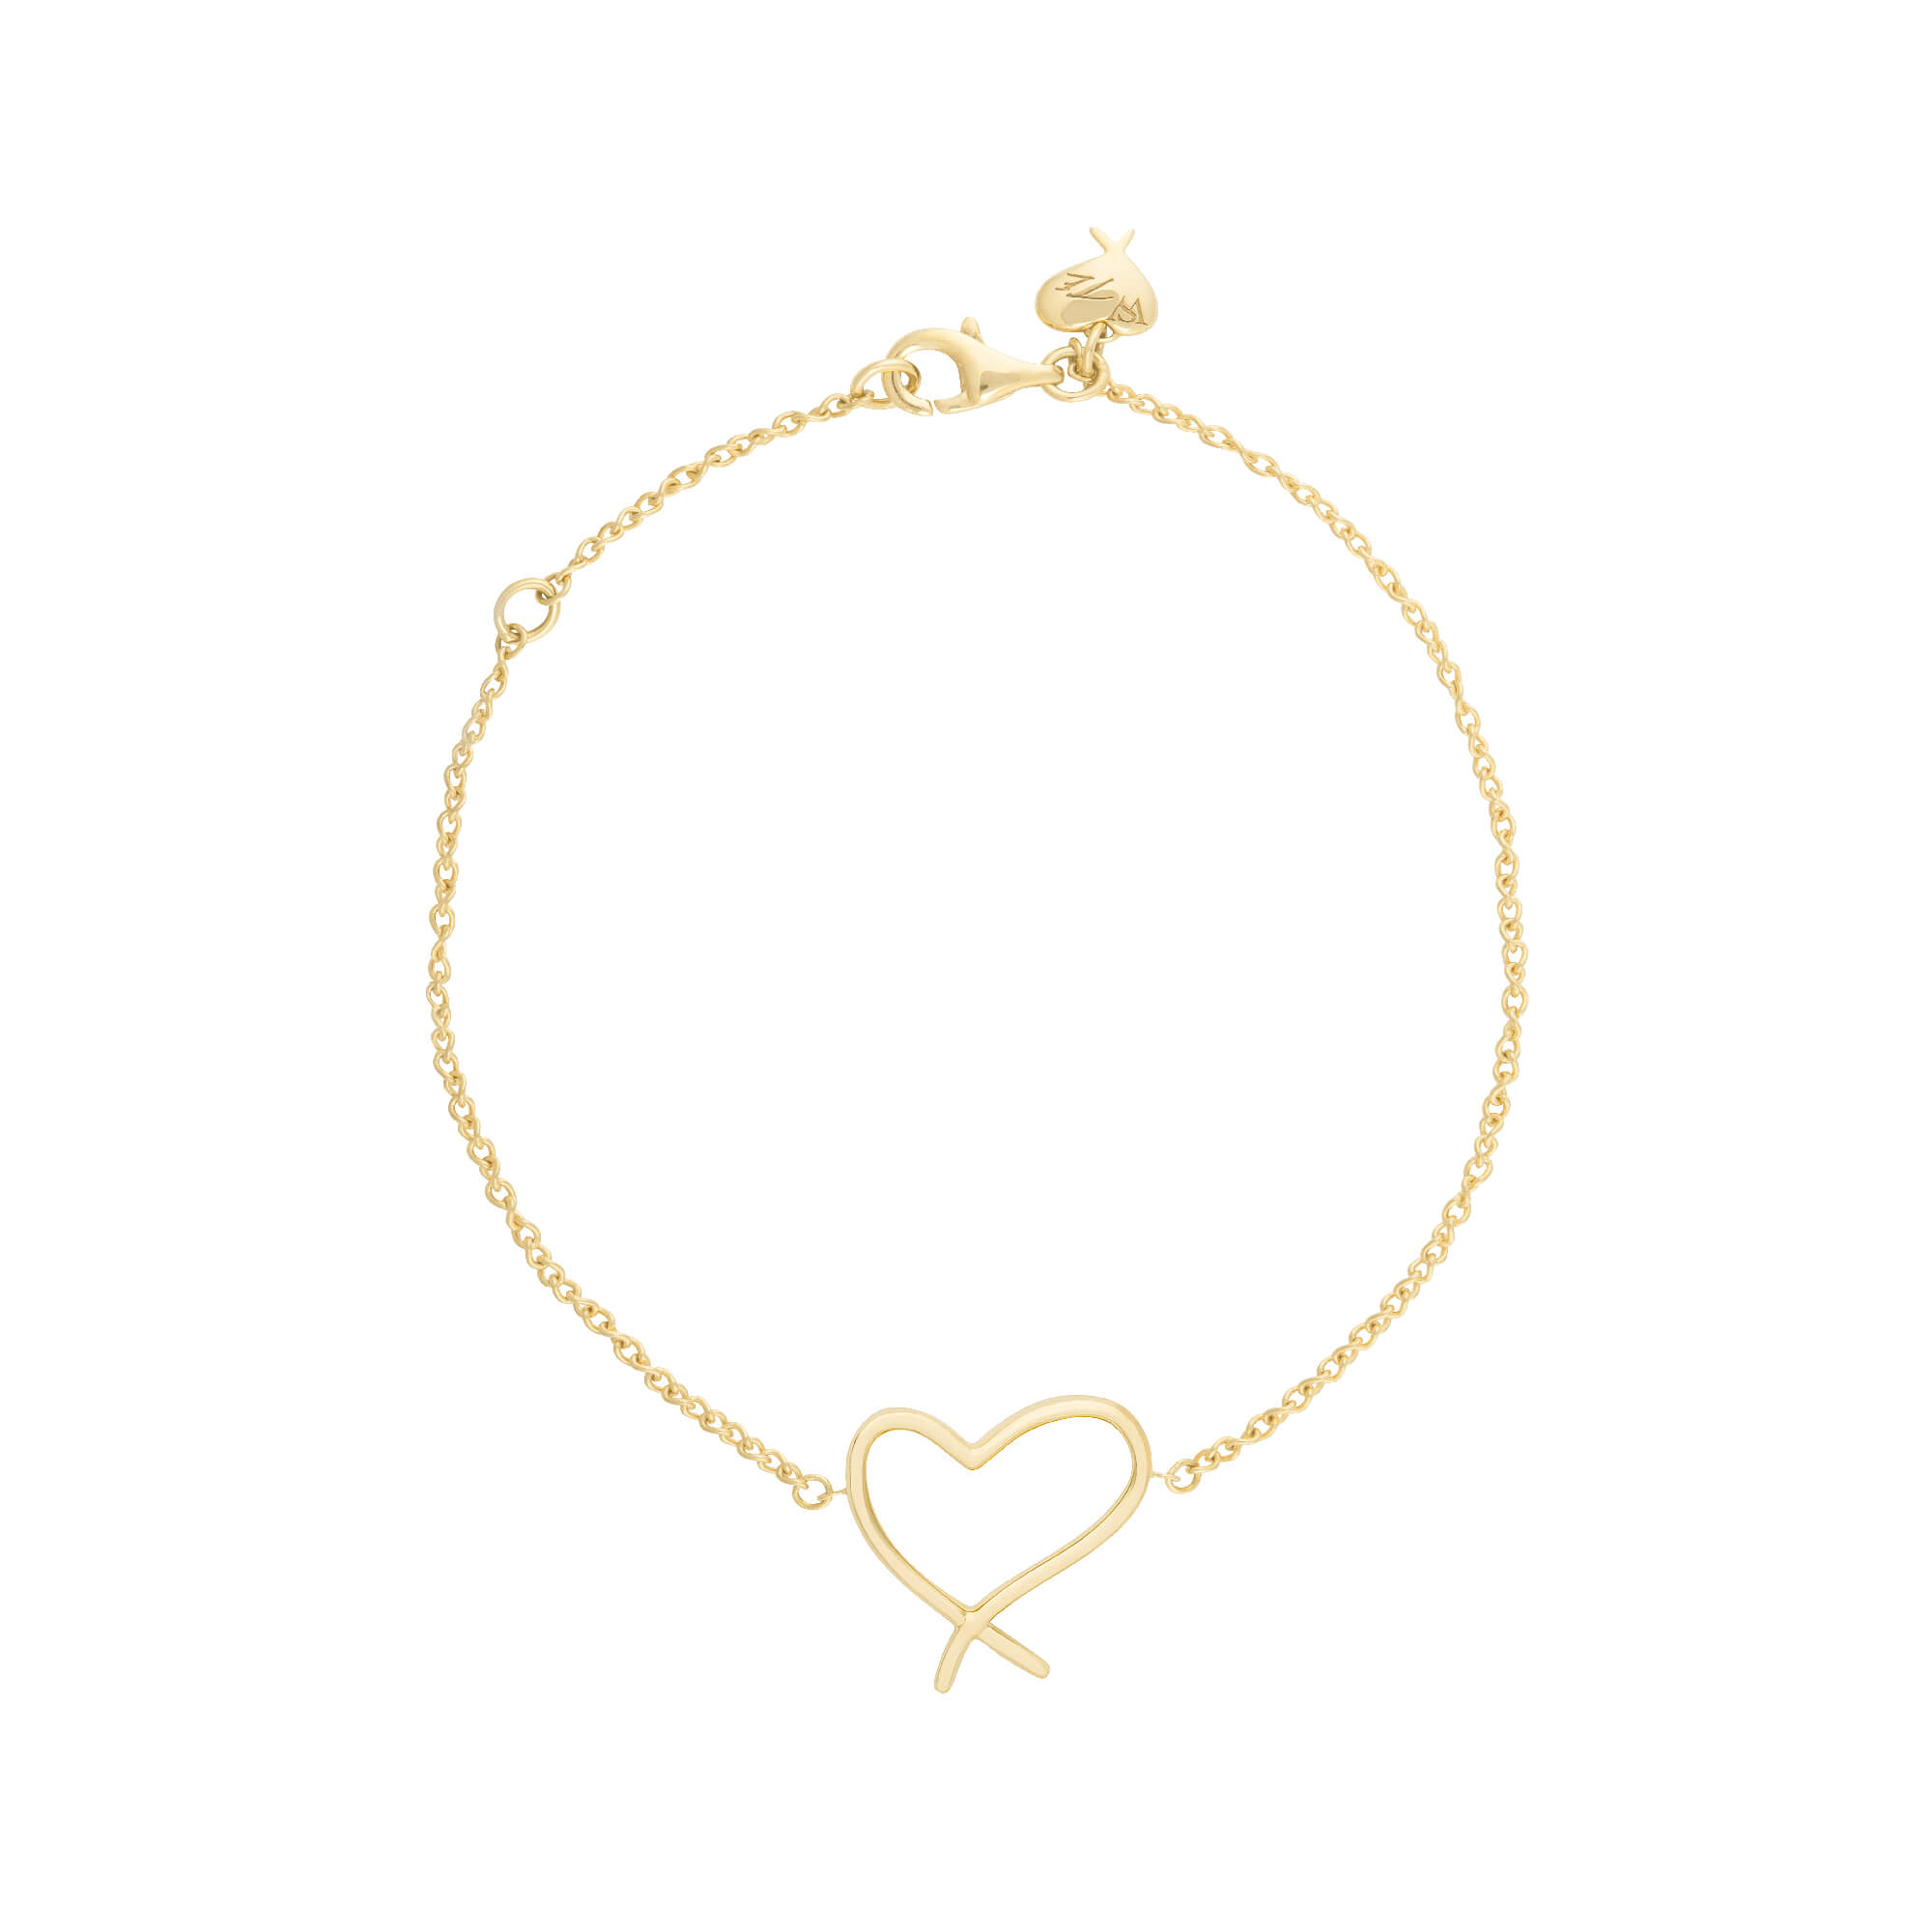 Neon Yellow Gold Heart Bracelet | I Promise To Love You